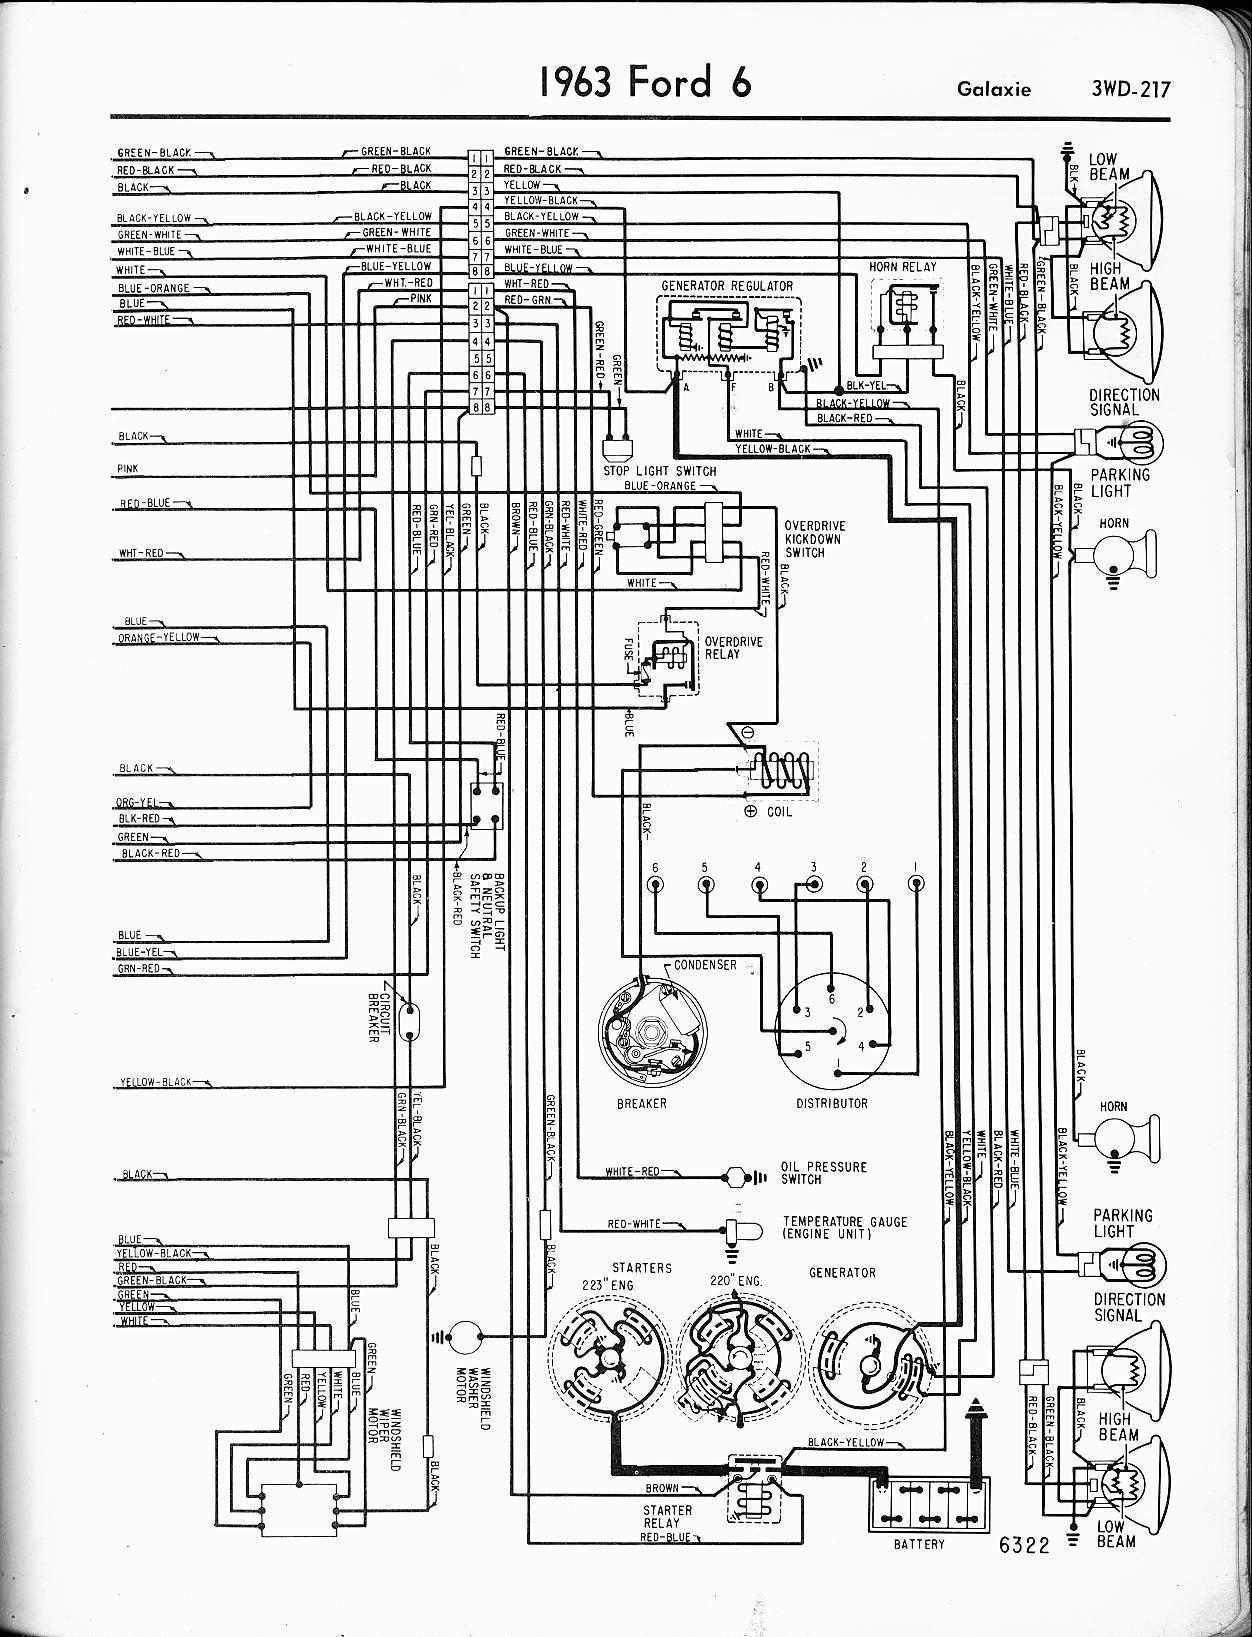 1955 Ford F100 Wiring Diagram Library Simonand 1966 Turn 1963 6 Cyl Galaxie Right